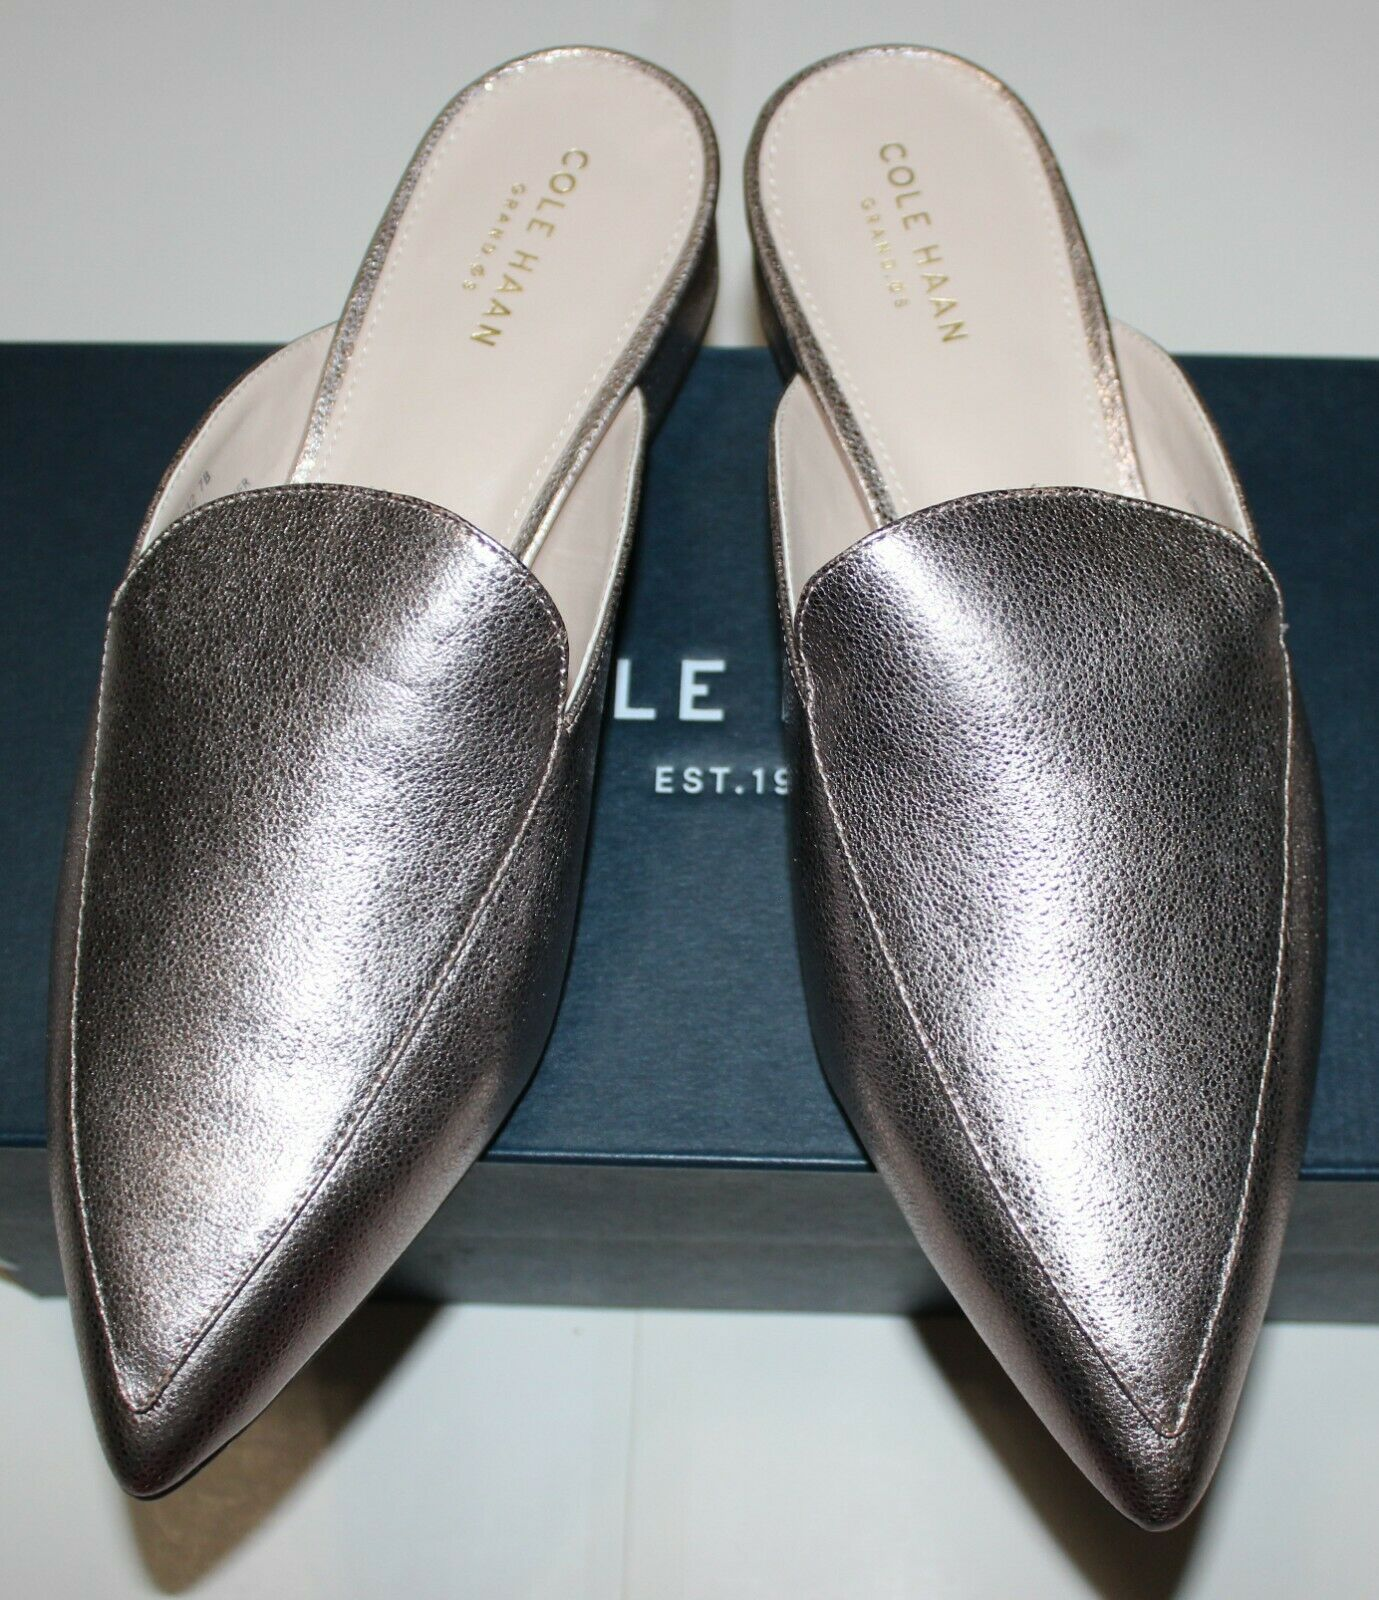 140 COLE HAAN PIPER  GLITTER LOAFER MULE